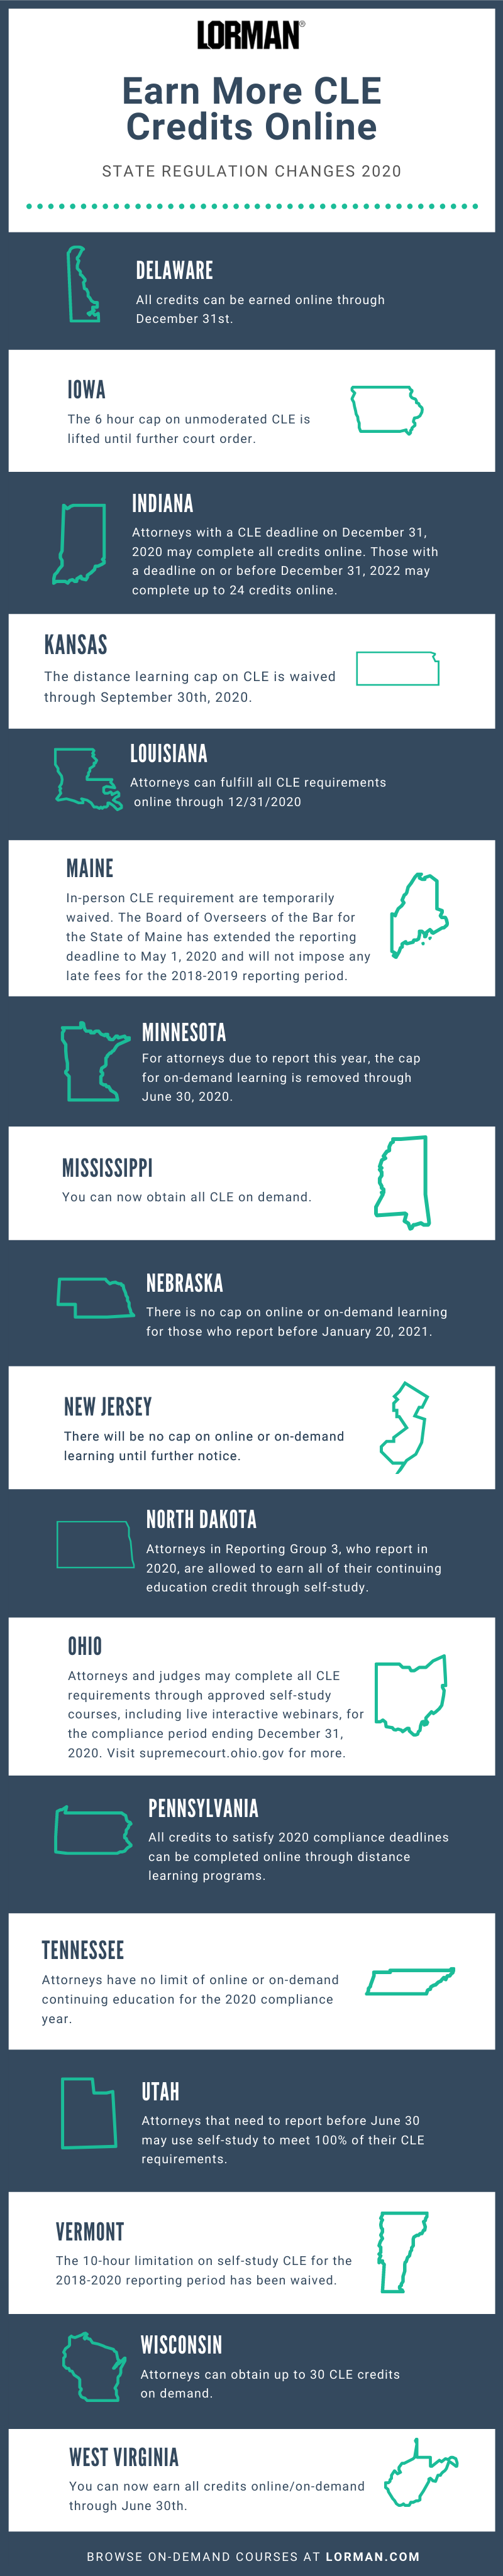 infographic highlighting CLE changes in multiple states